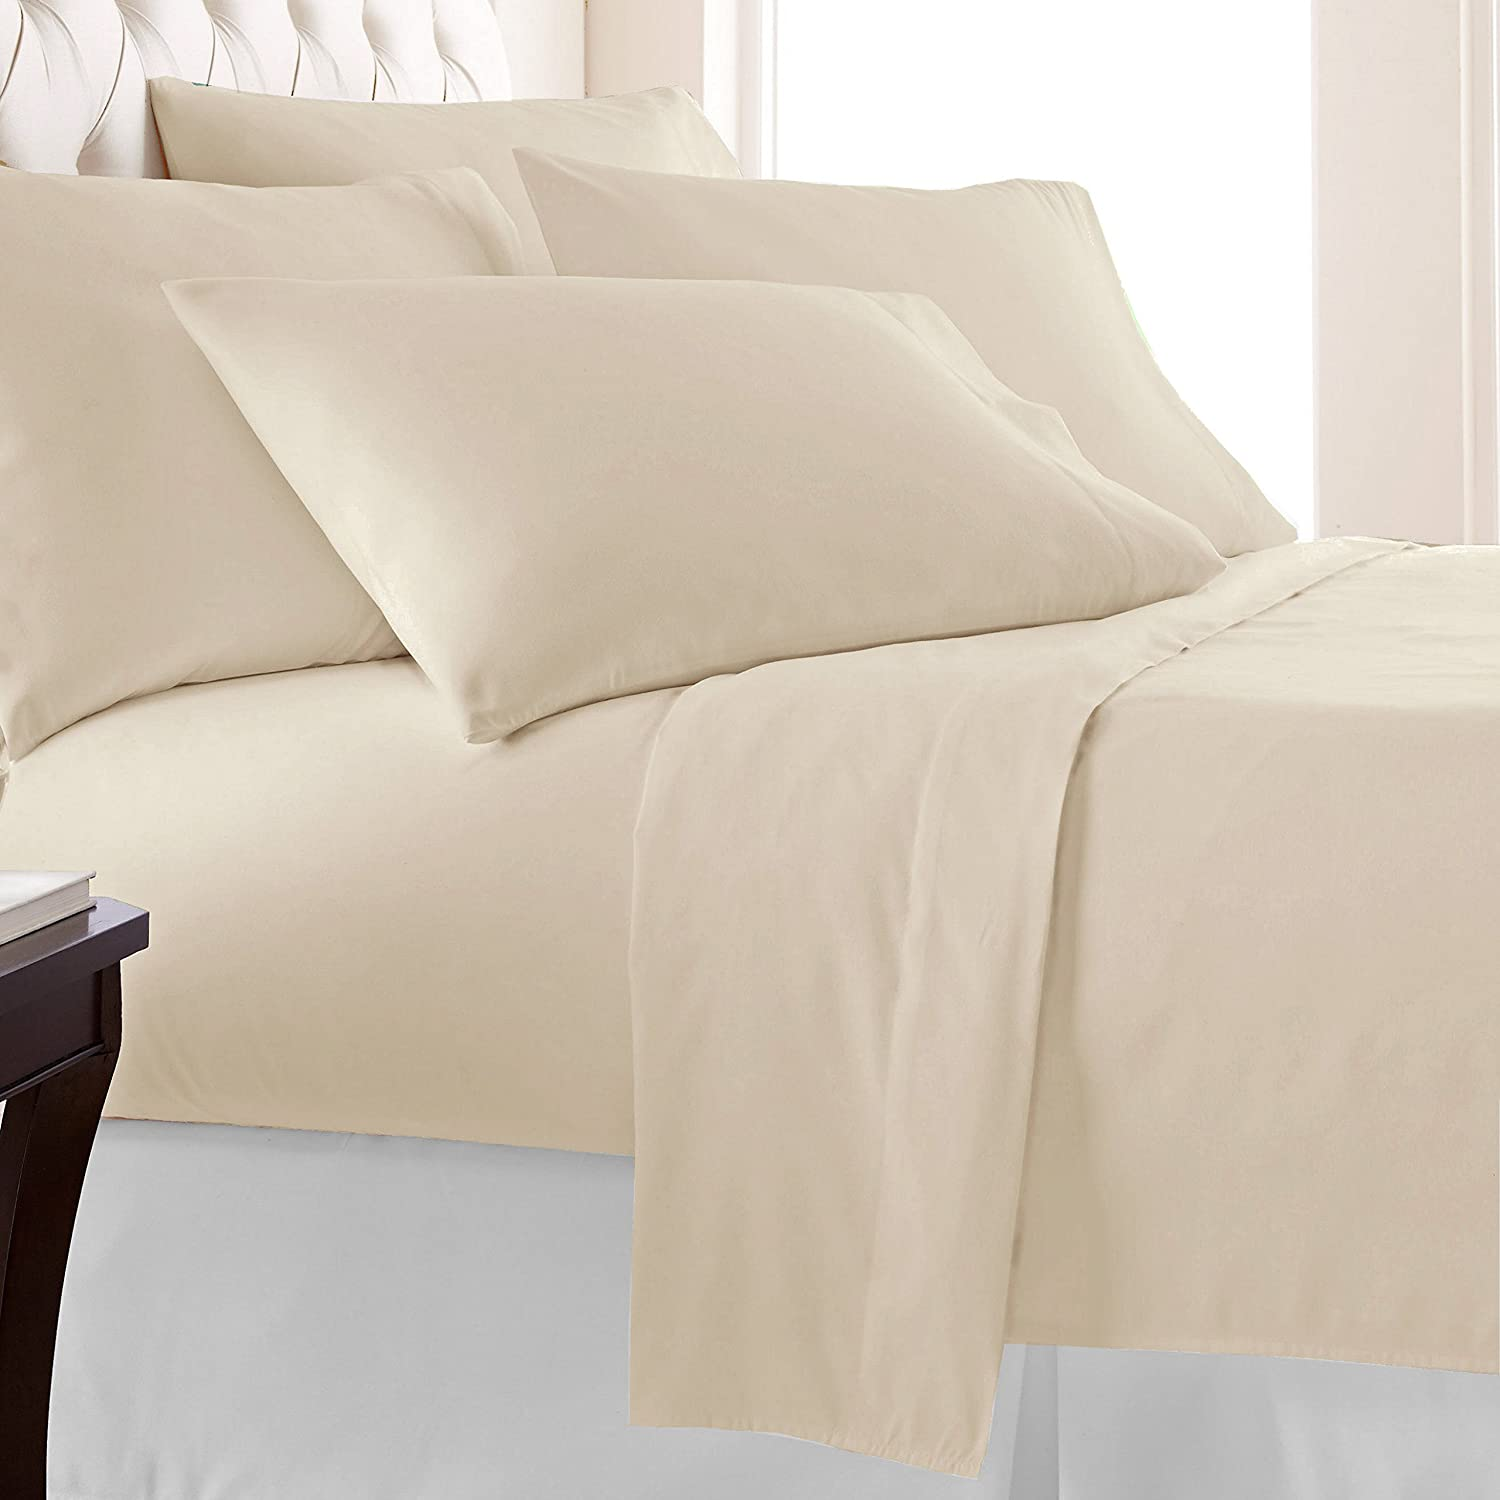 100% Long-staple Cotton Beige Queen Sheets